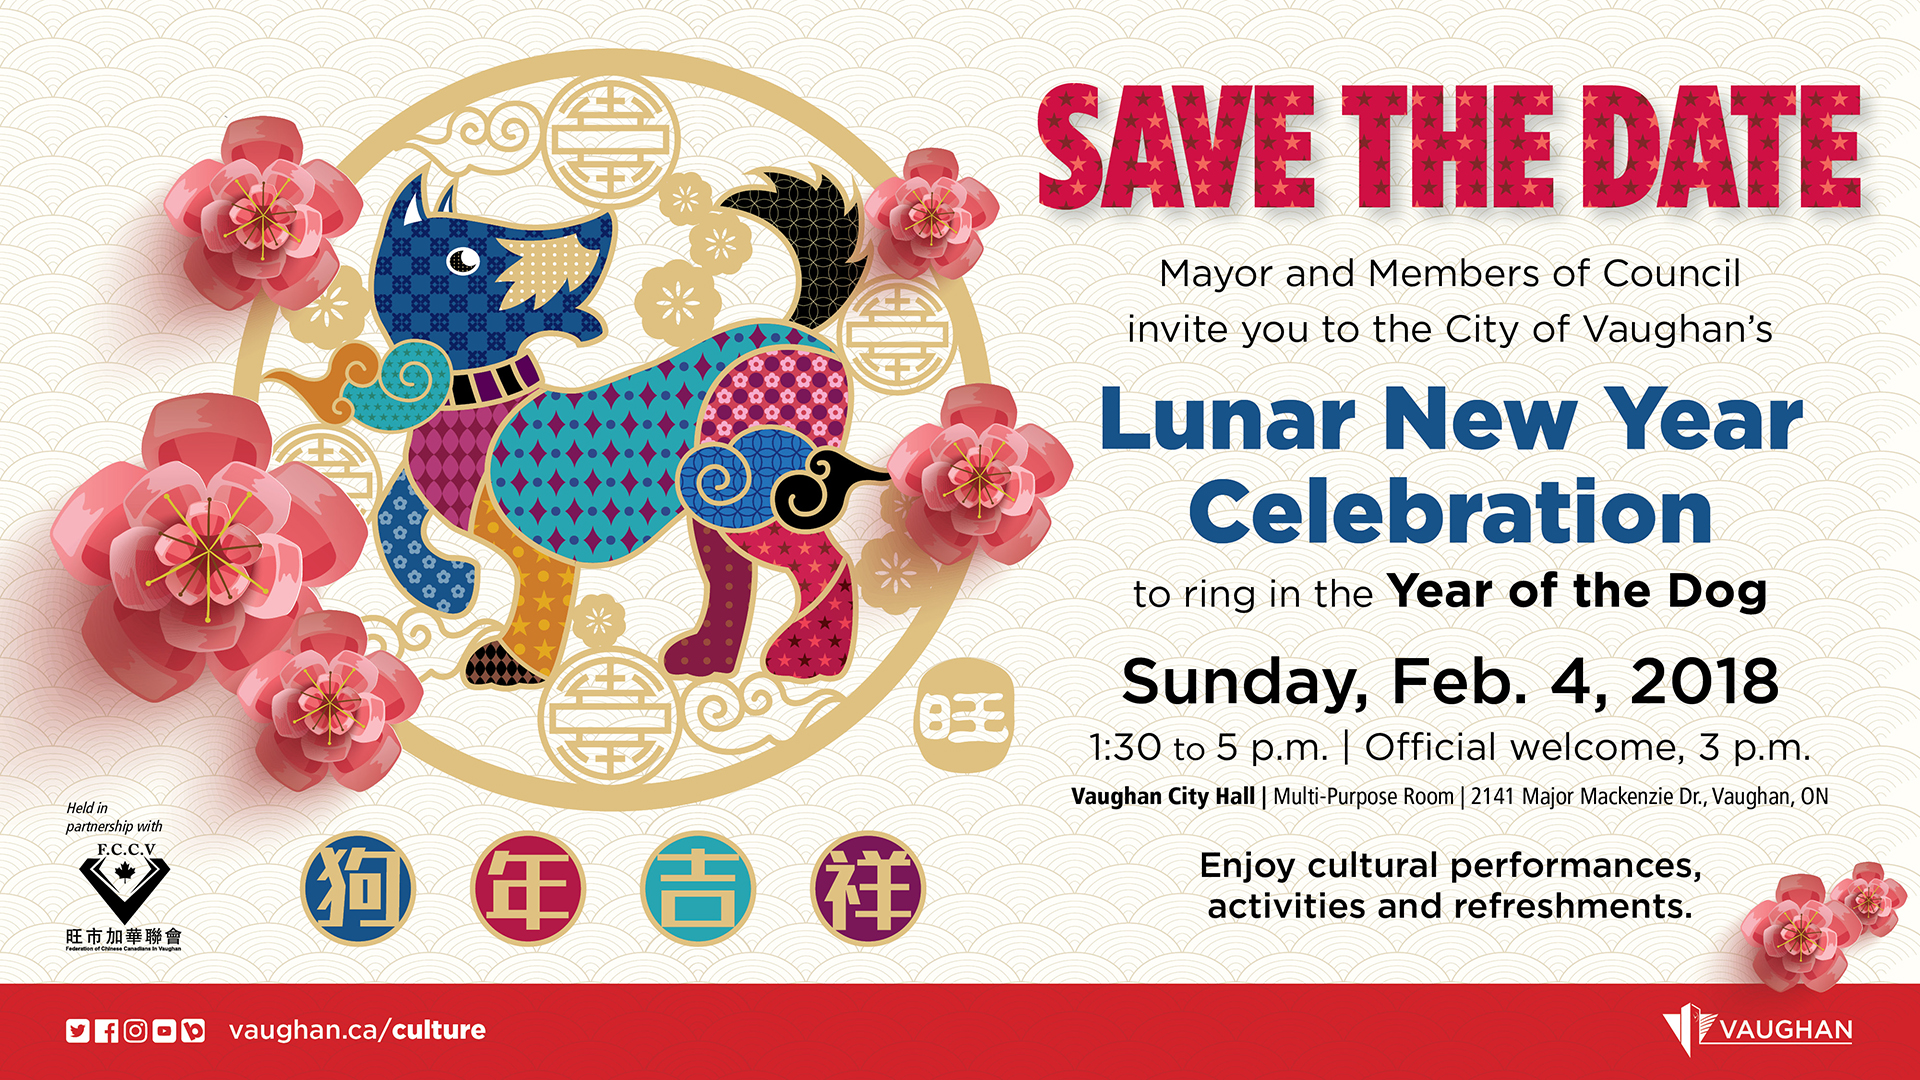 vaughan celebrates the year of the dog the lunar